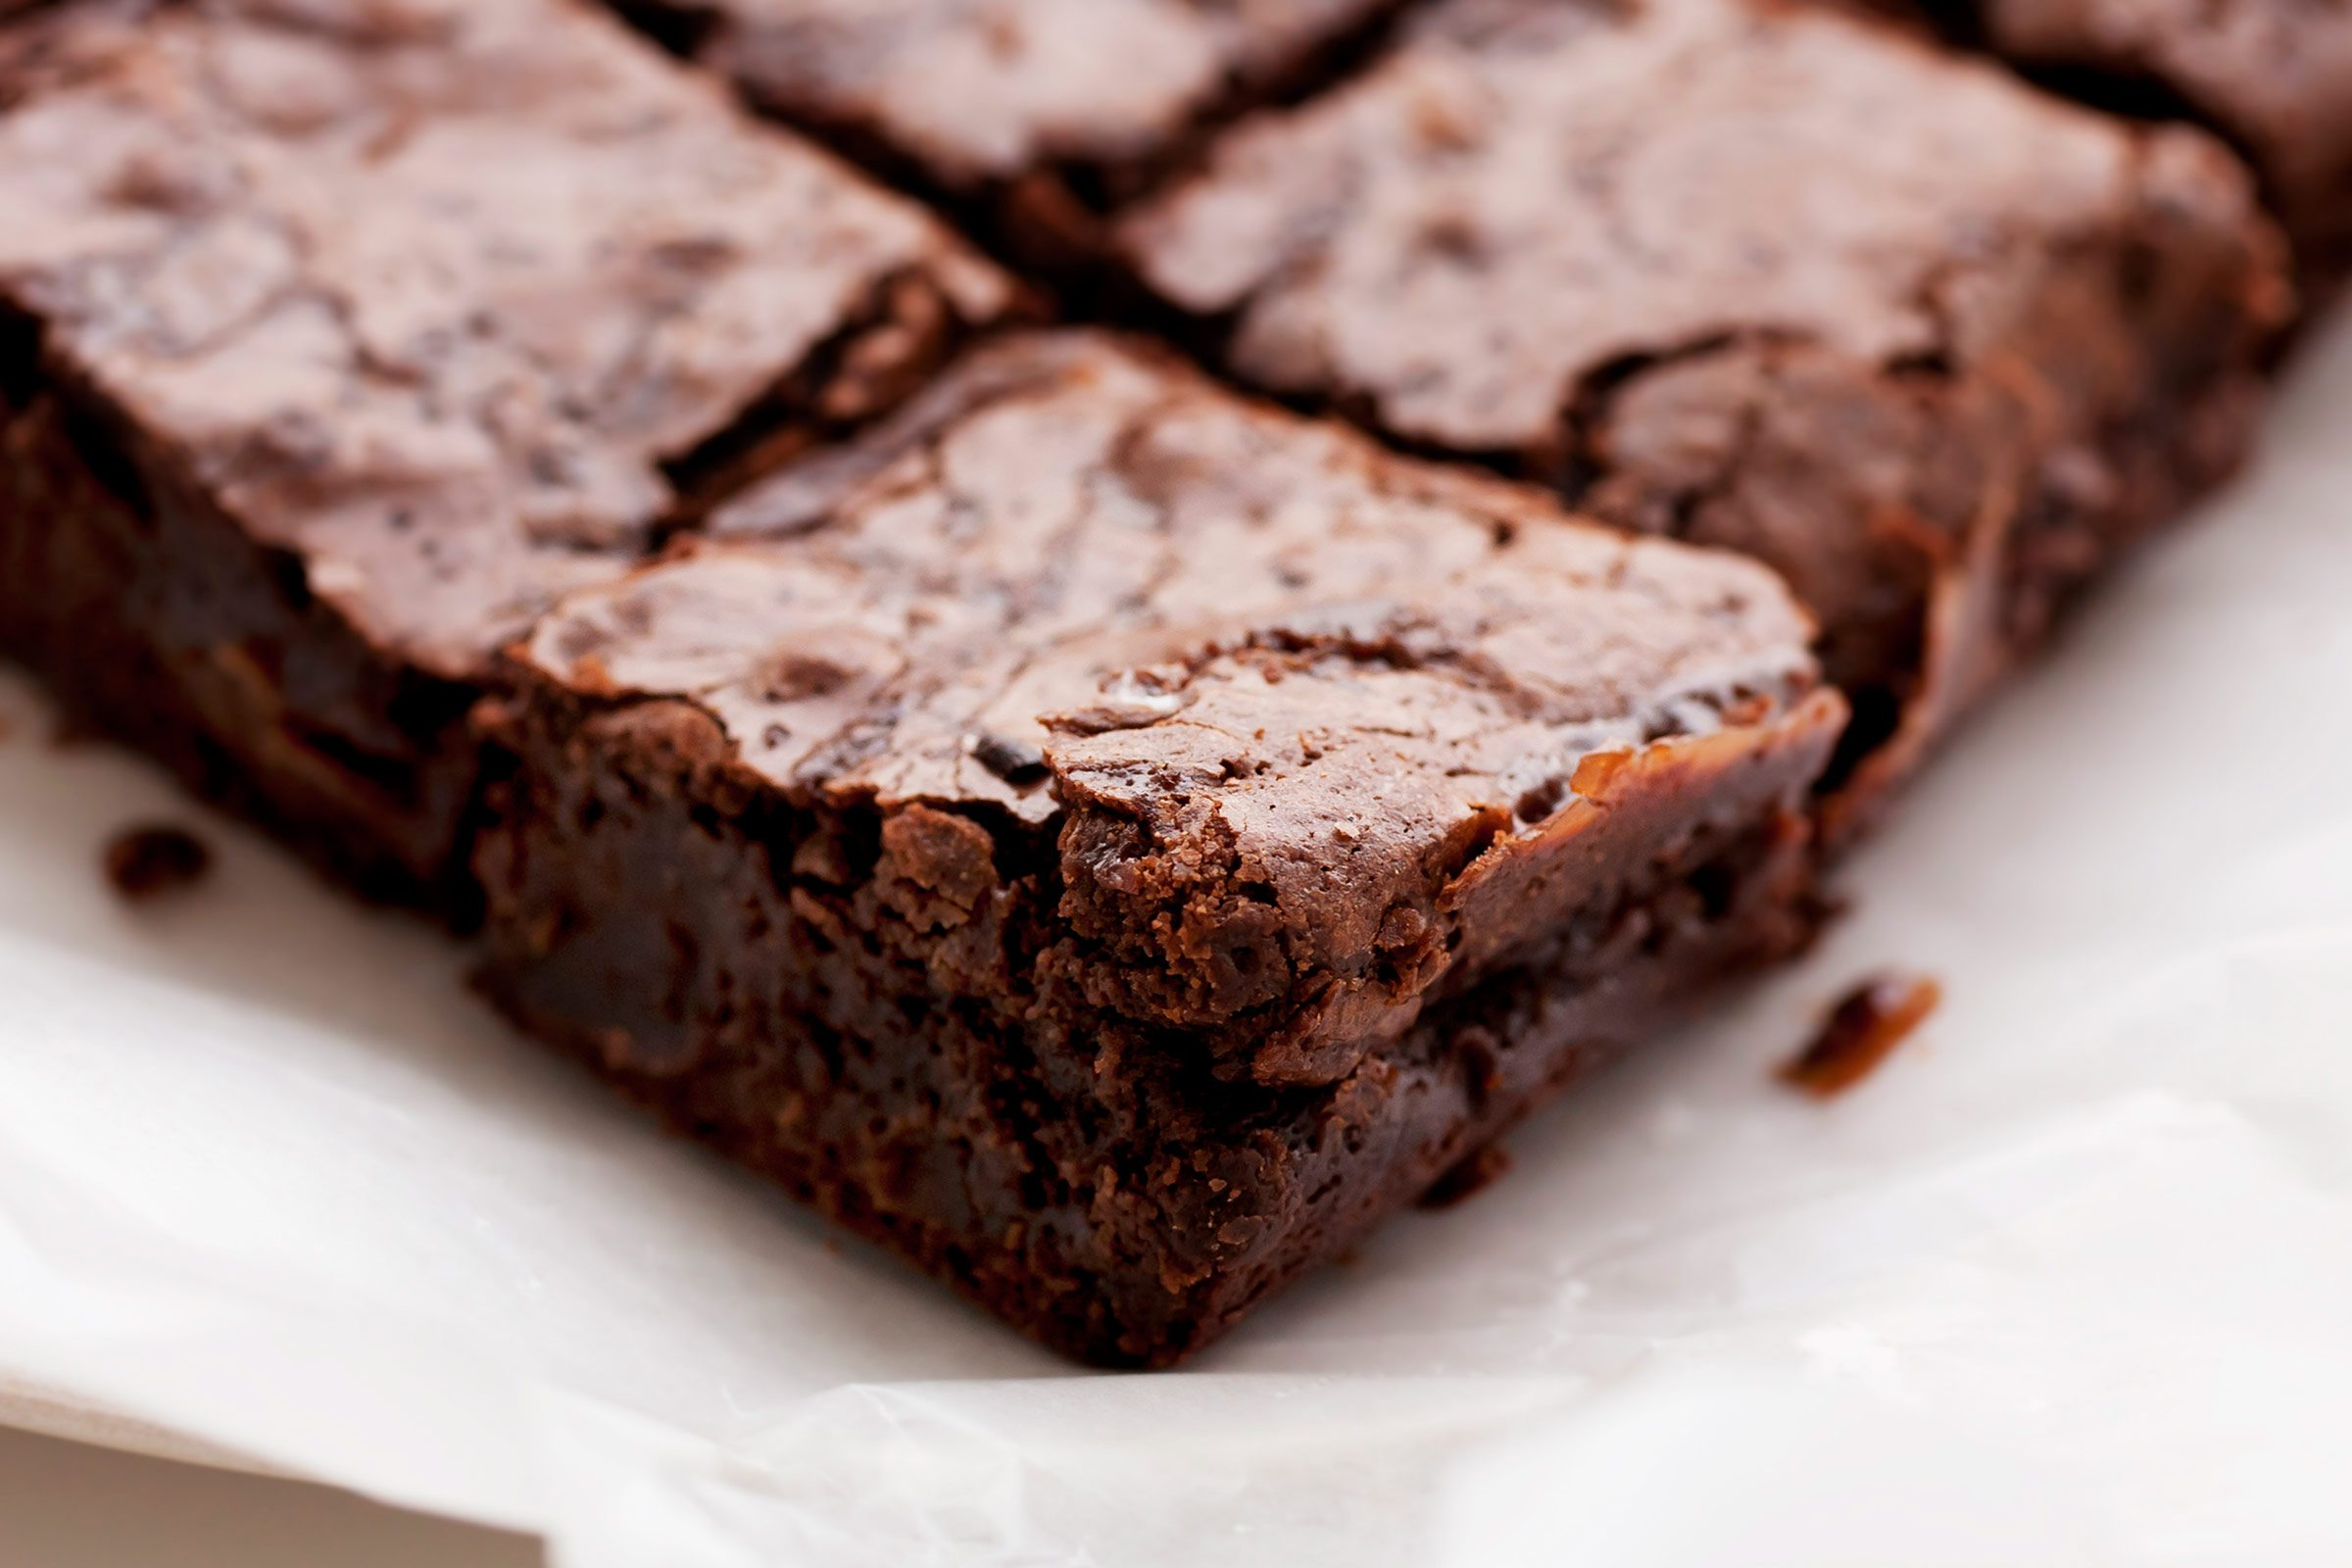 5. Brownies and cookies are good portable desserts.